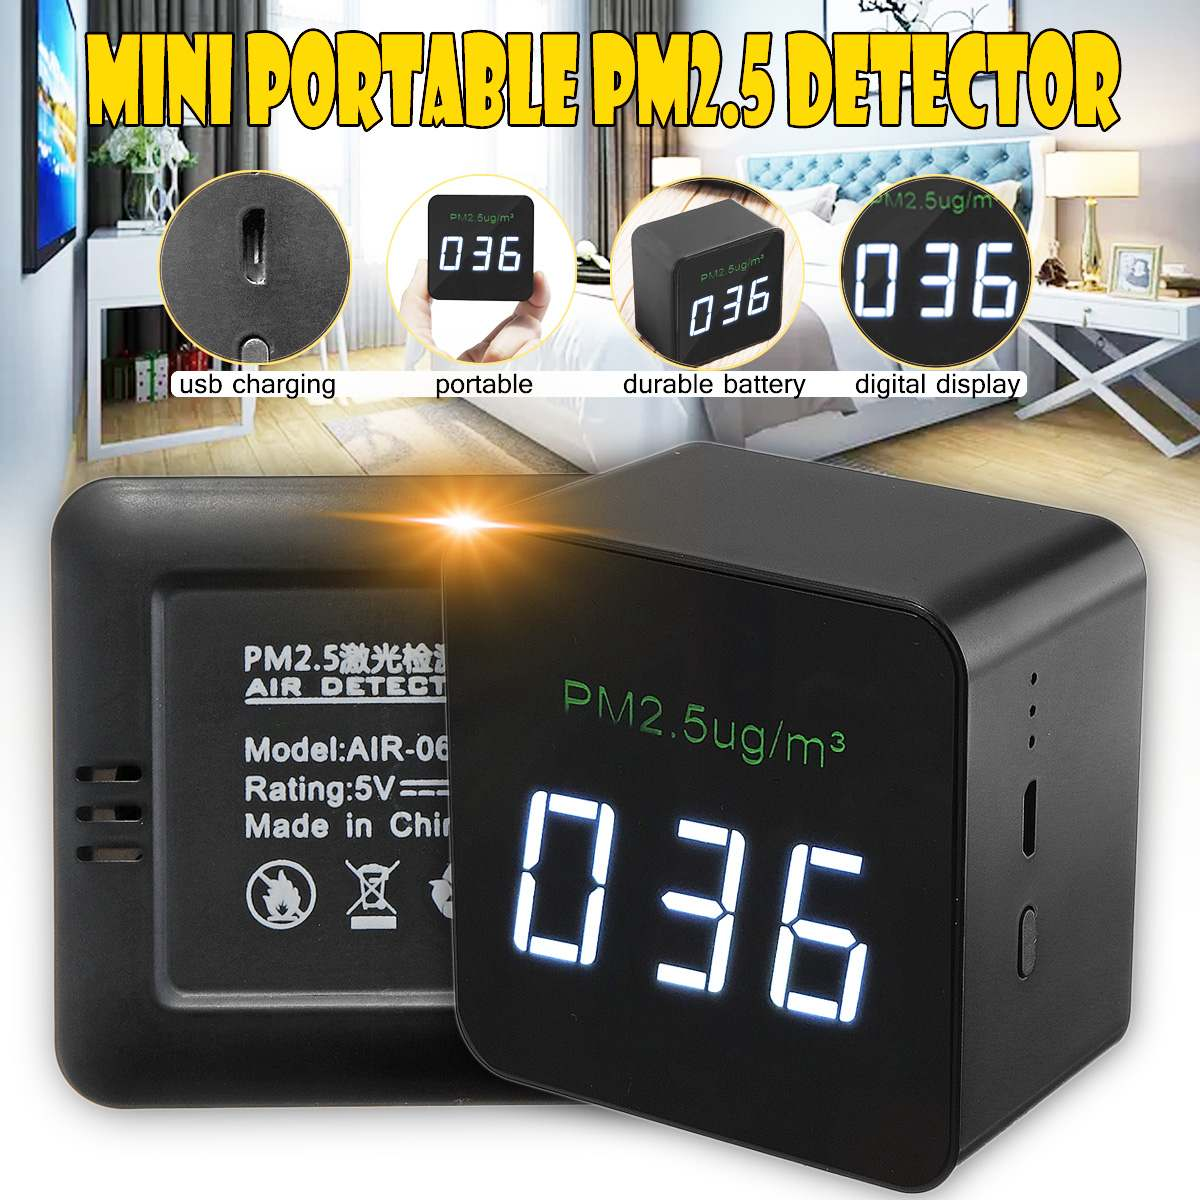 Air Quality Detector Laser PM2.5 Detectors air quality monitor Tester Rechargeable